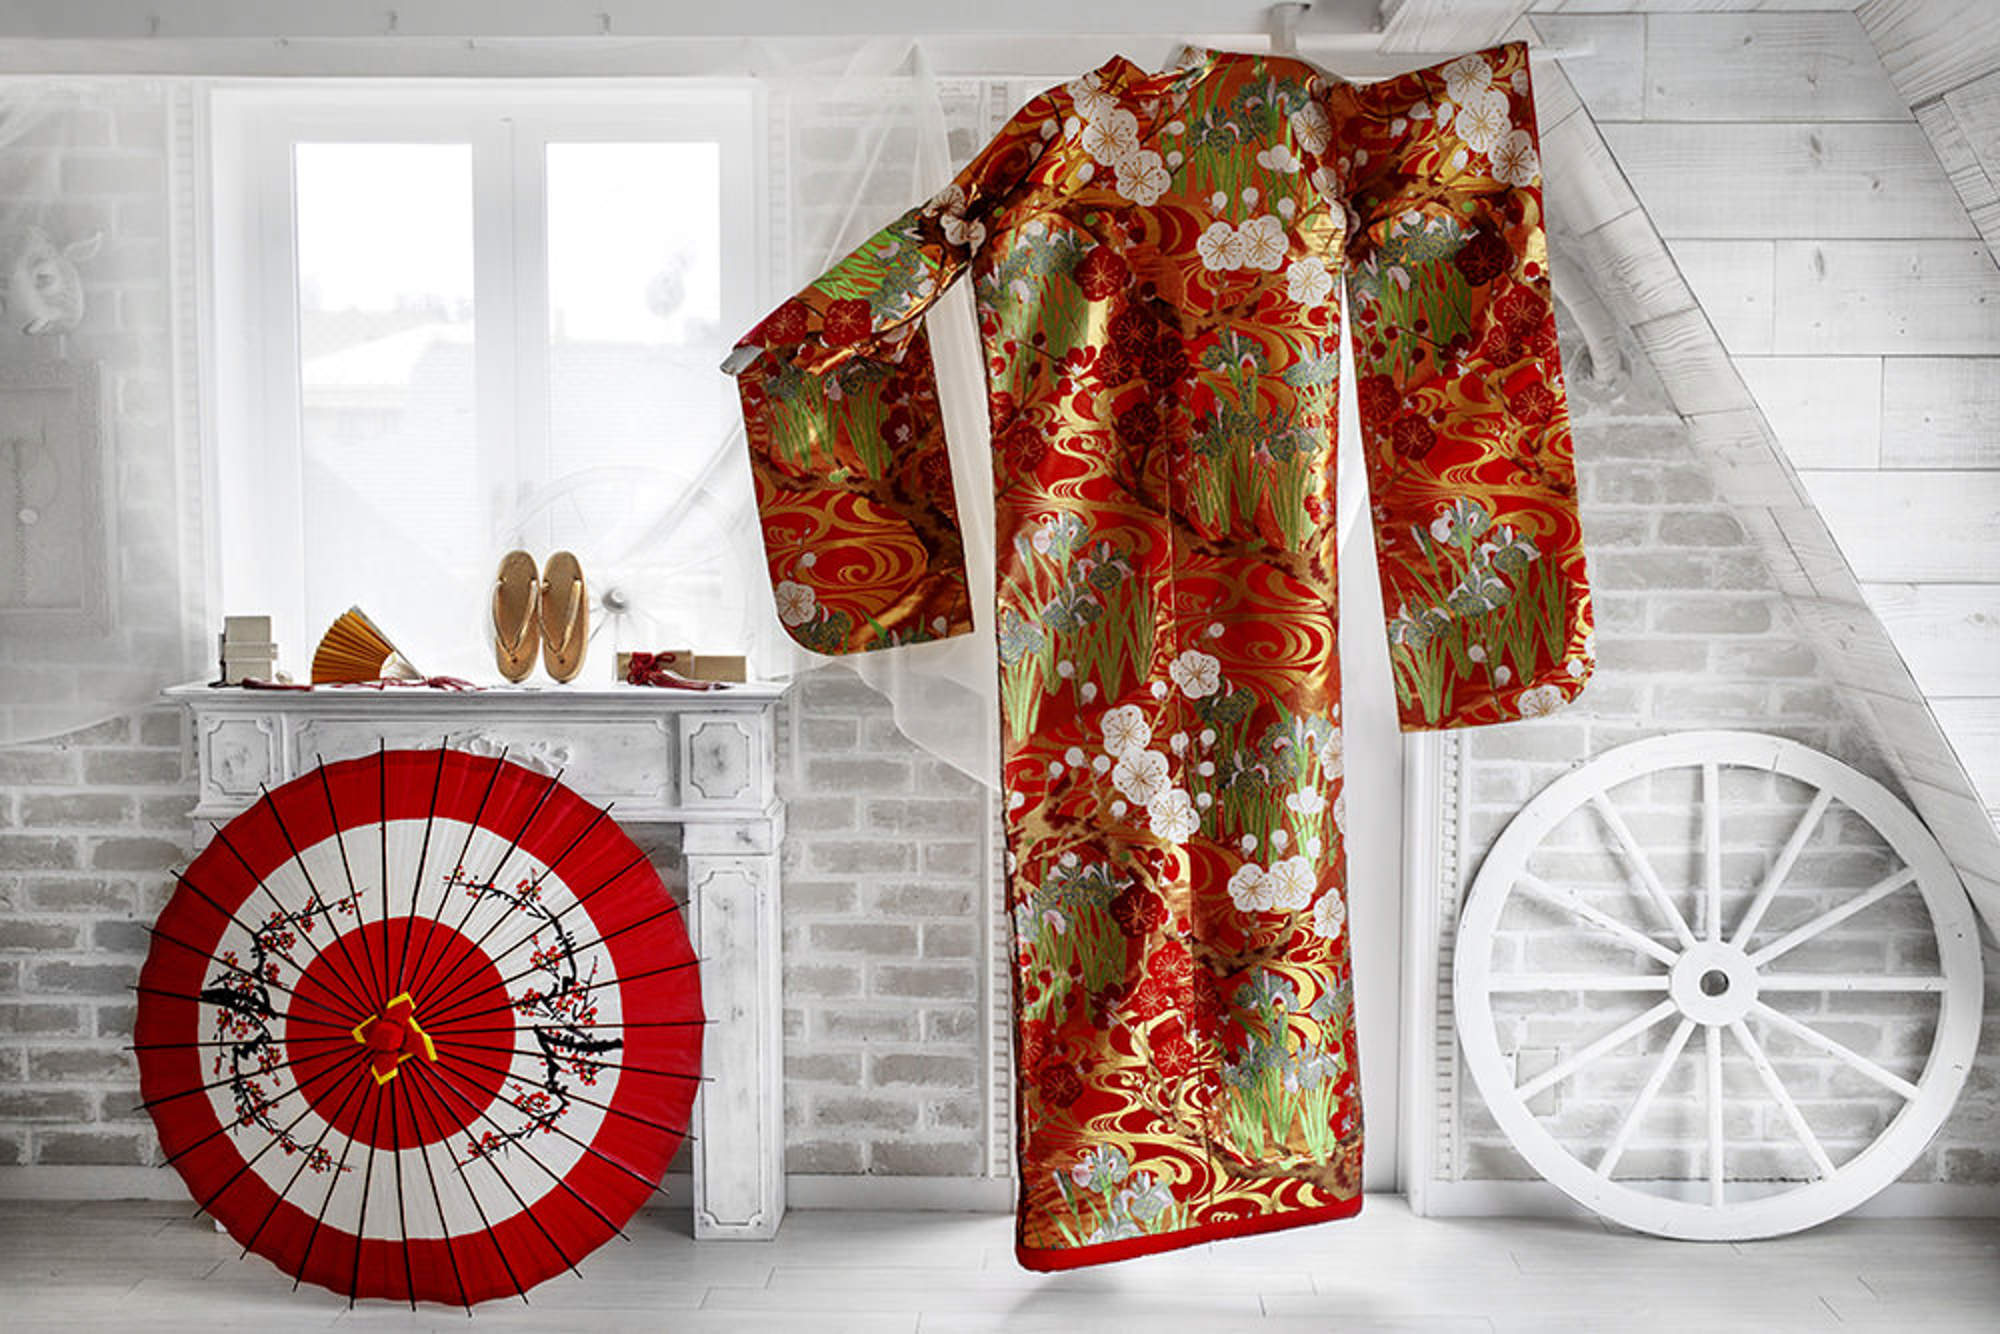 Beautiful red and gold kimono with umbrella and shoes